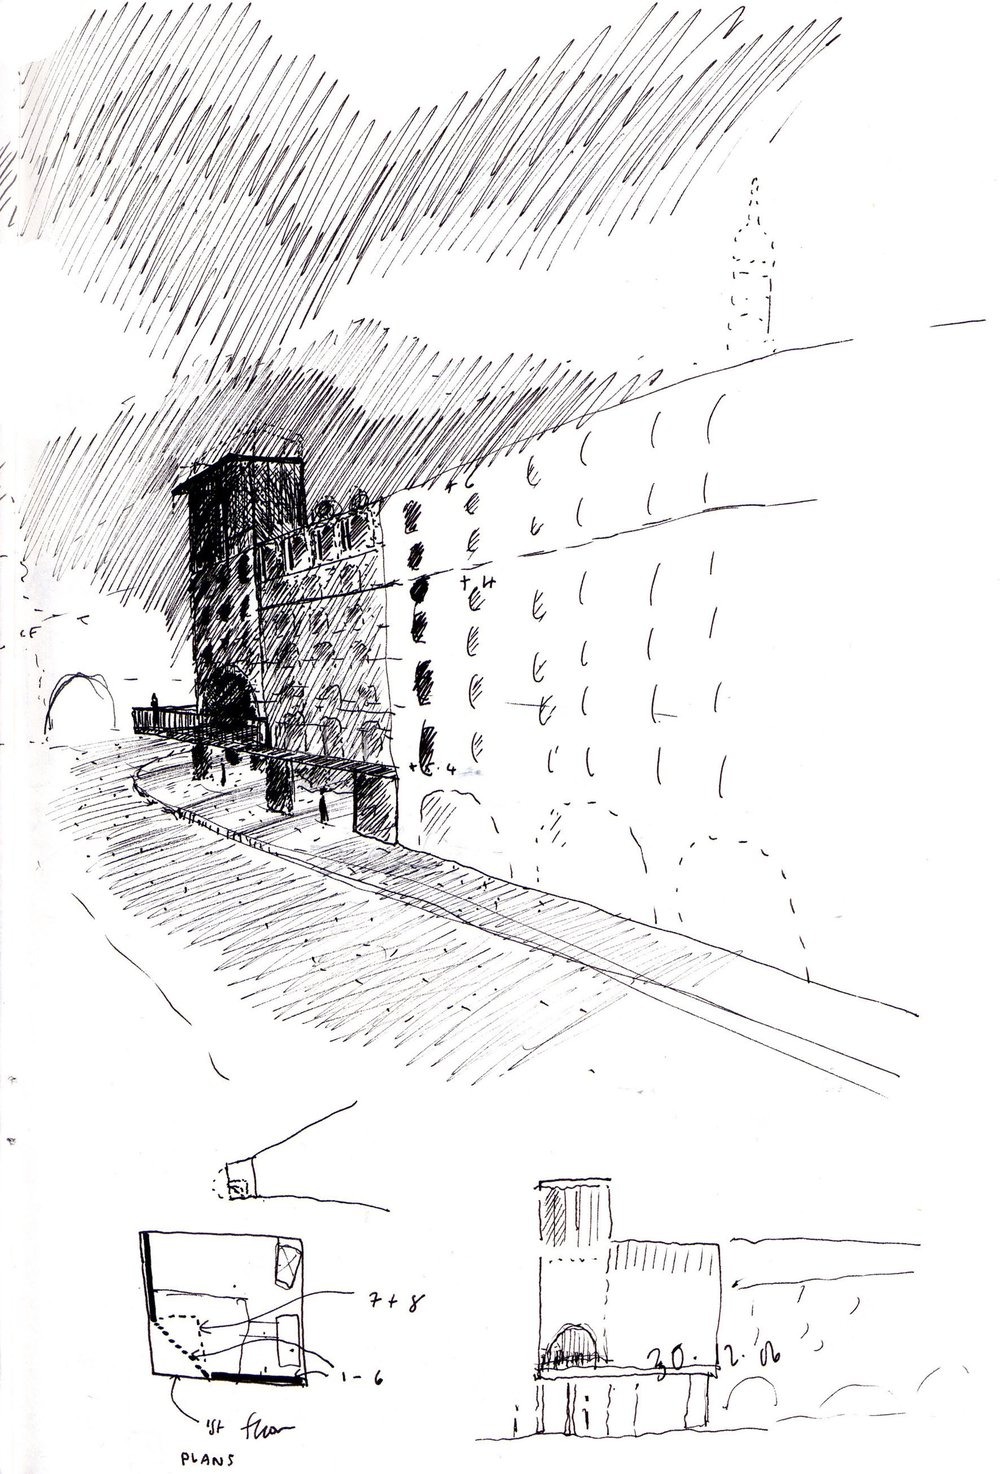 Small_Office_Building_Scrapbook_Jan-sketch-2.jpg